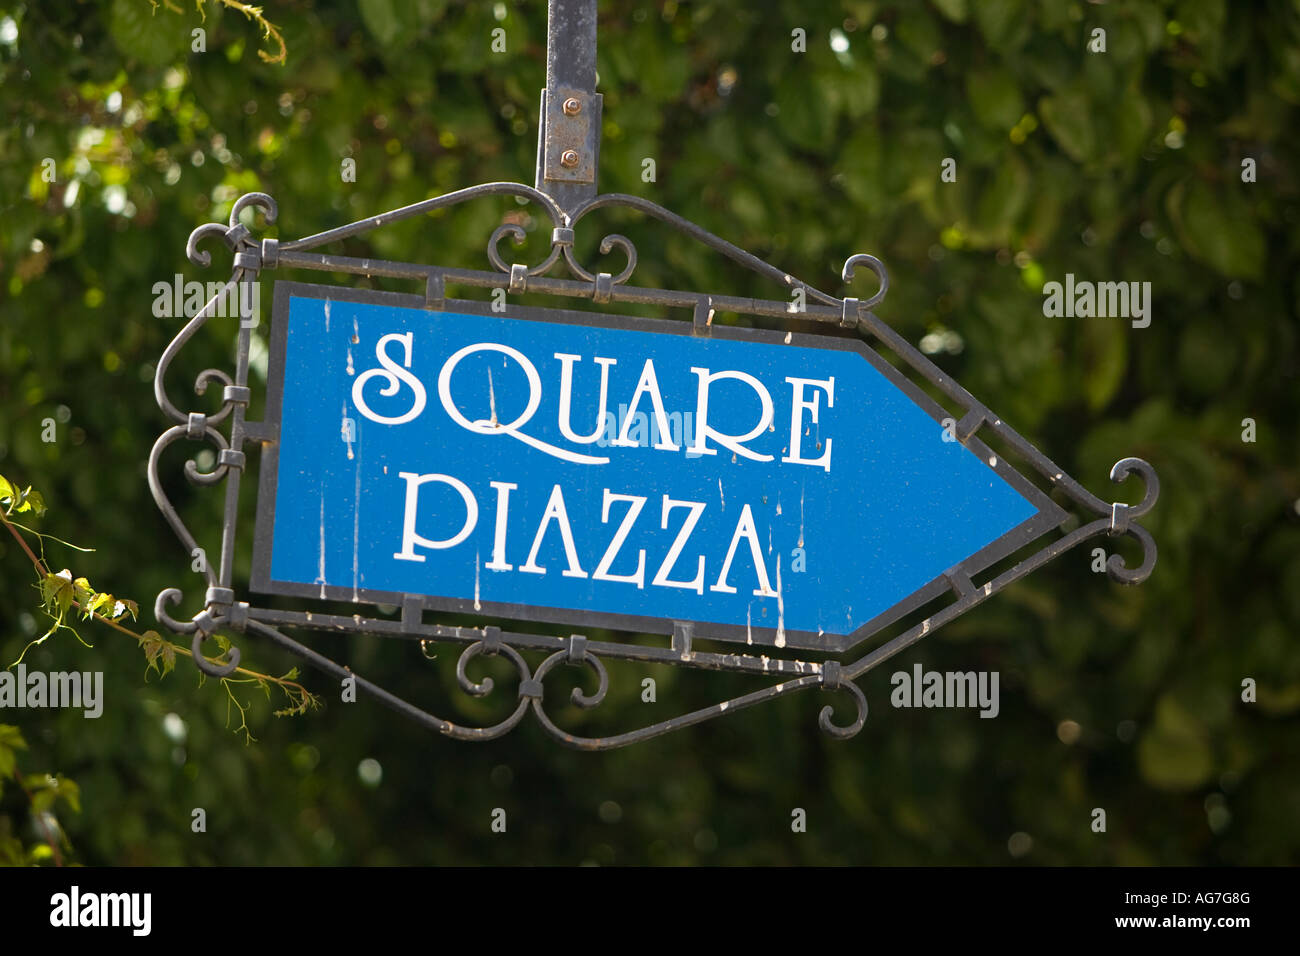 Metal sign soiled with bird droppings for the square or piazza in Lindos on the Greek island of Rhodes - Stock Image